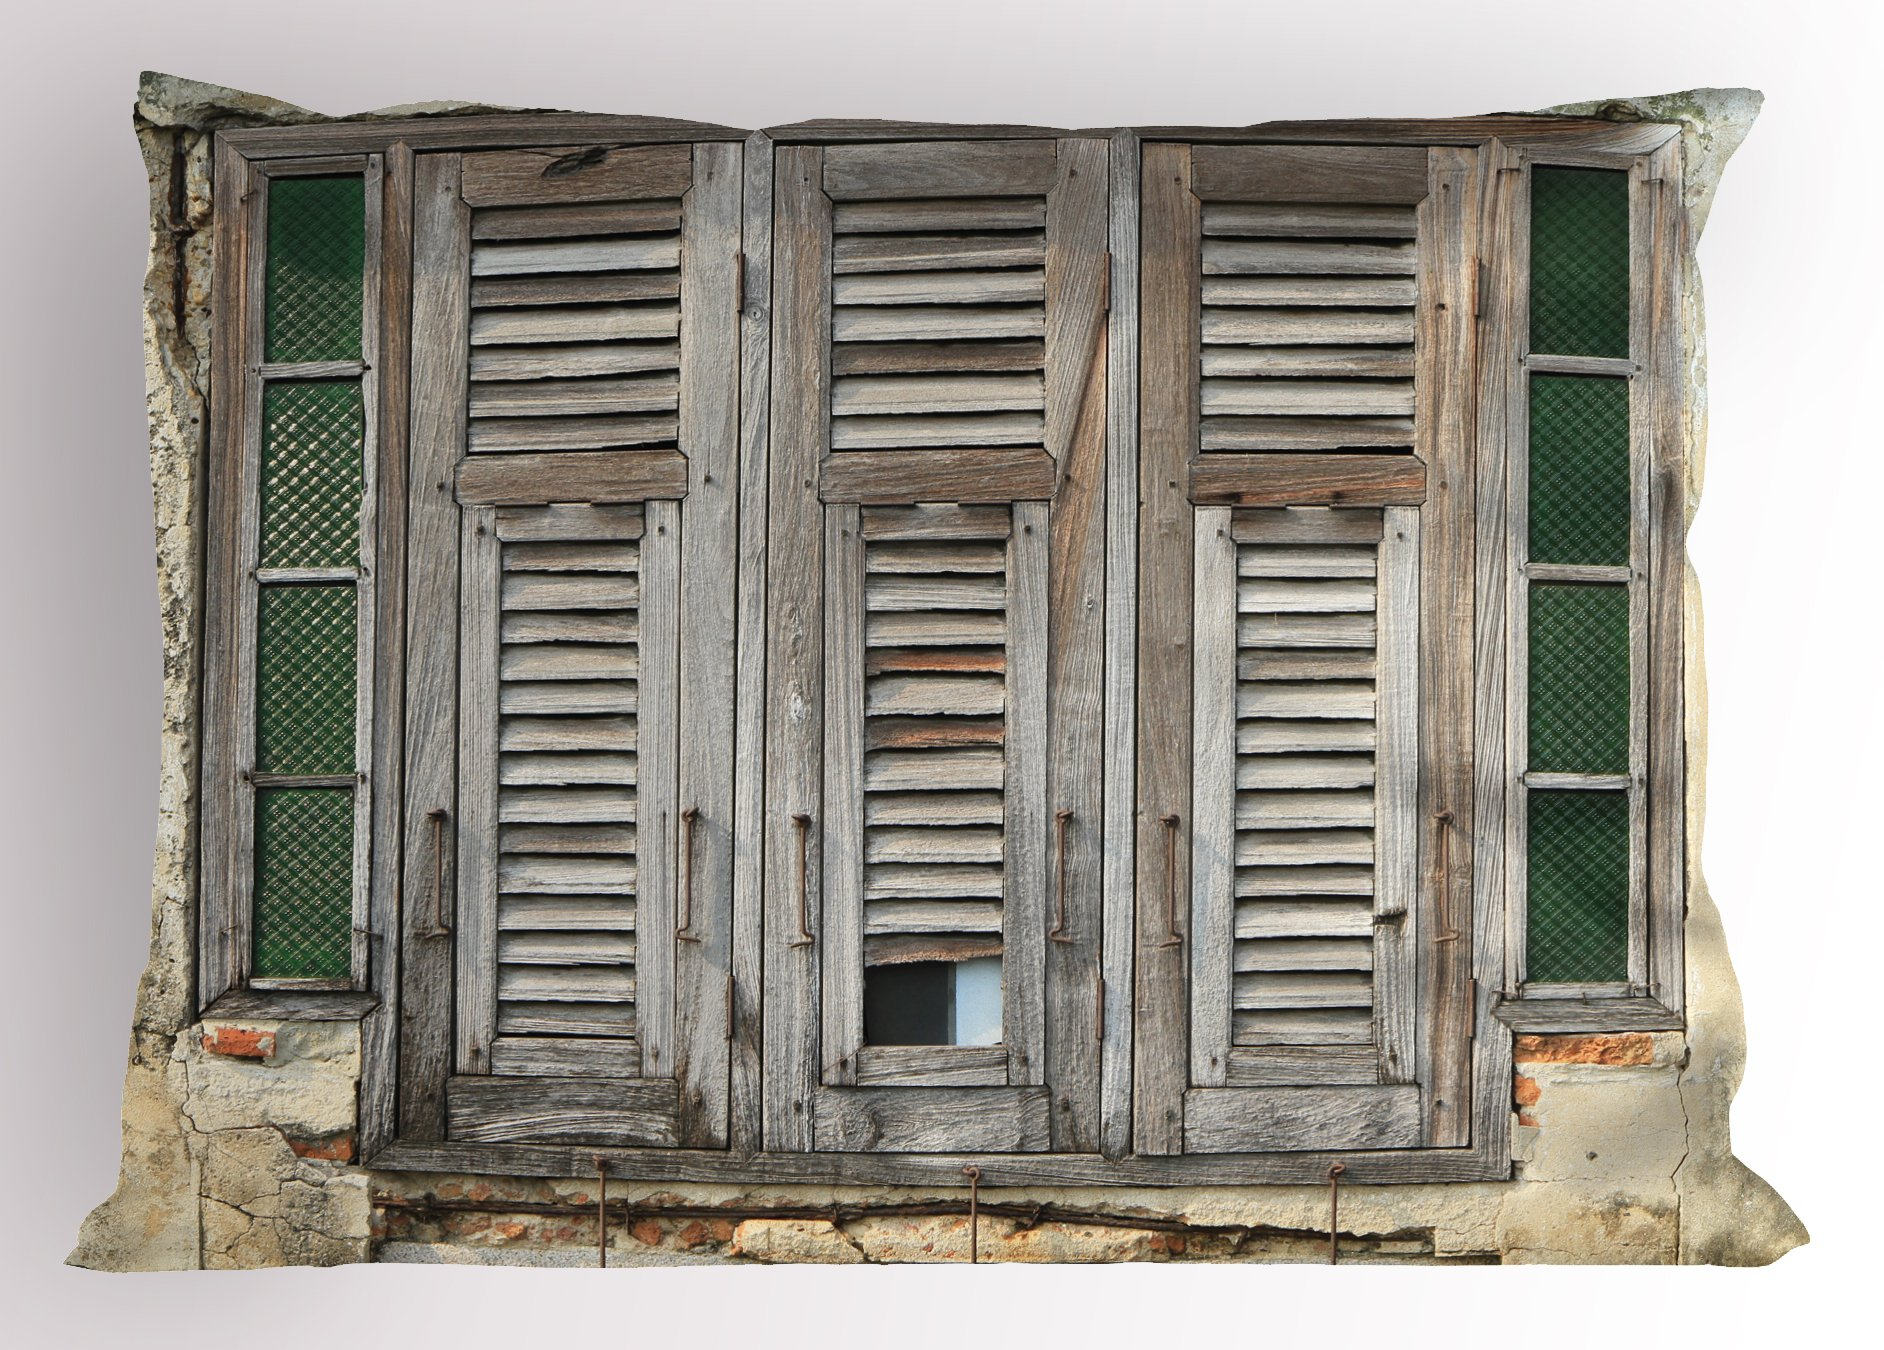 Lunarable Shutters Pillow Sham, Aged Weathered Wooden Window Blinds Rough Cracked Wall Vintage Home Decoration, Decorative Standard King Size Printed Pillowcase, 36 X 20 inches, Beige Green